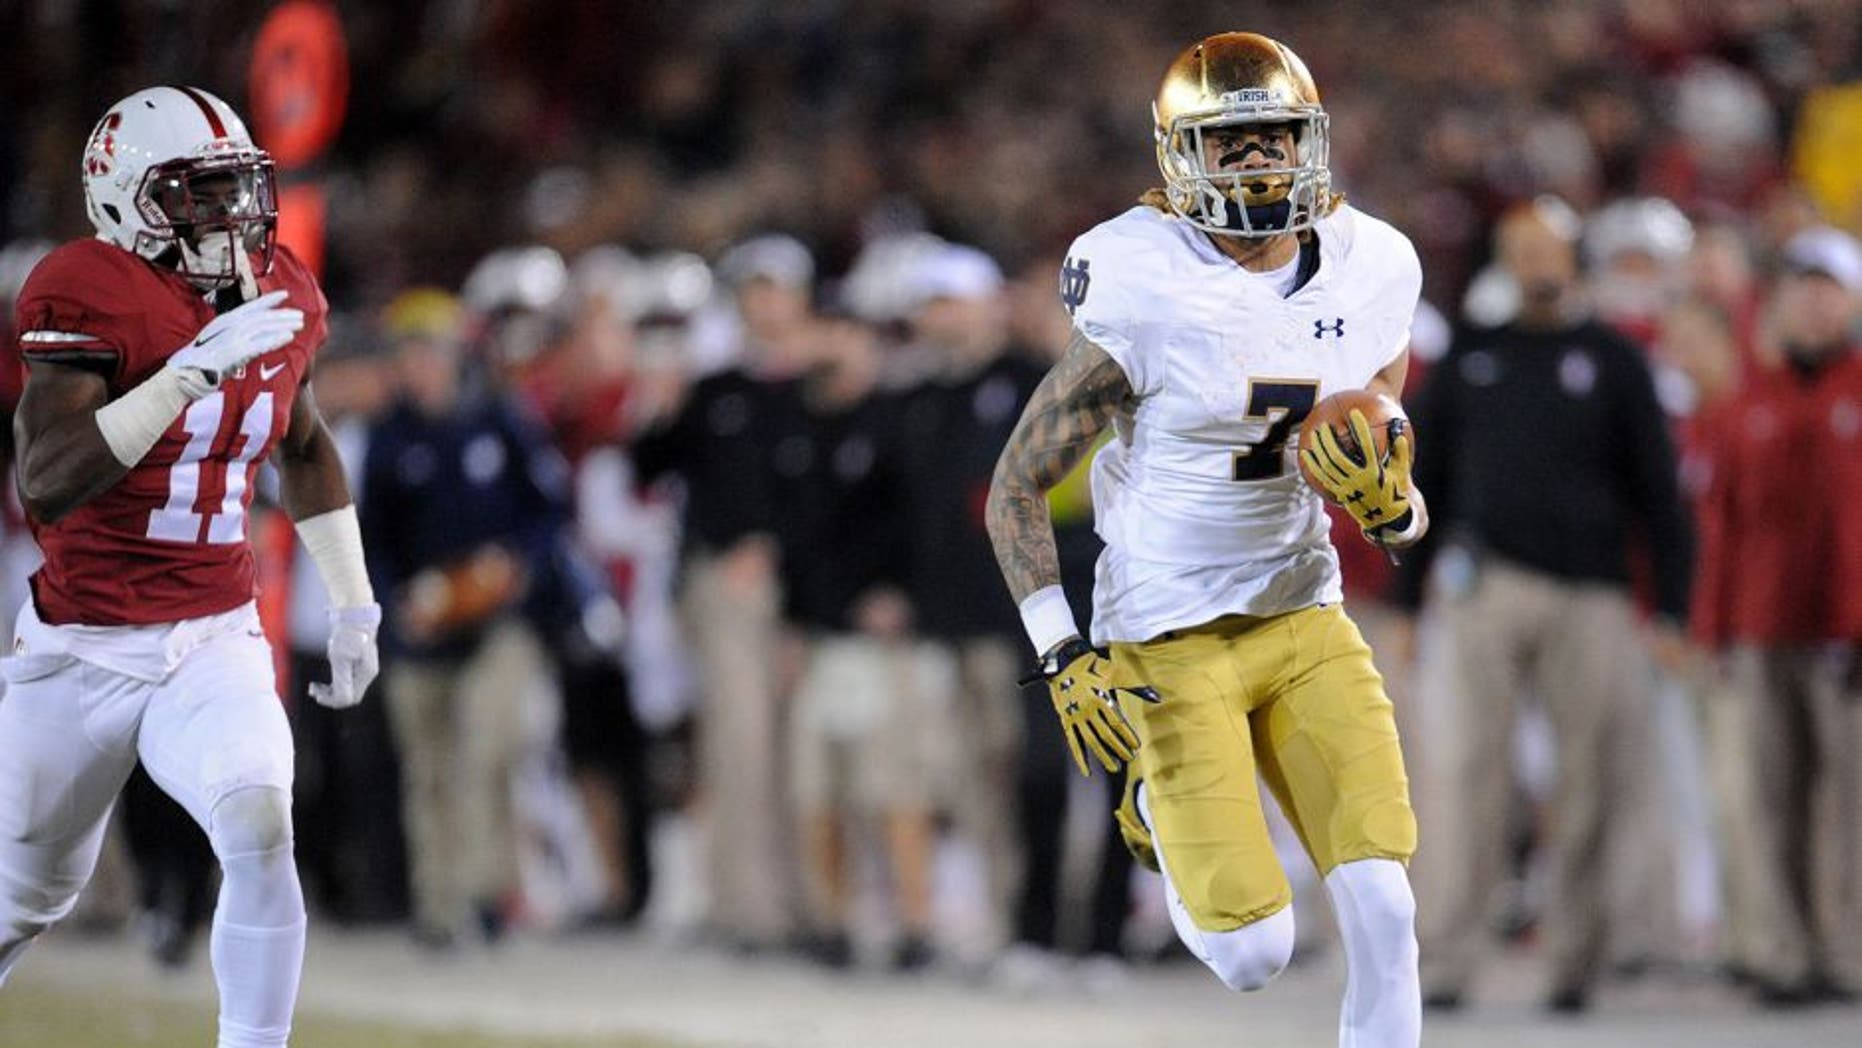 November 28, 2015; Stanford, CA, USA; Notre Dame Fighting Irish wide receiver Will Fuller catches a pass and runs for a touchdown ahead of Stanford Cardinal cornerback Terrence Alexander (11) during the first half at Stanford Stadium. Mandatory Credit: Gary A. Vasquez-USA TODAY Sports